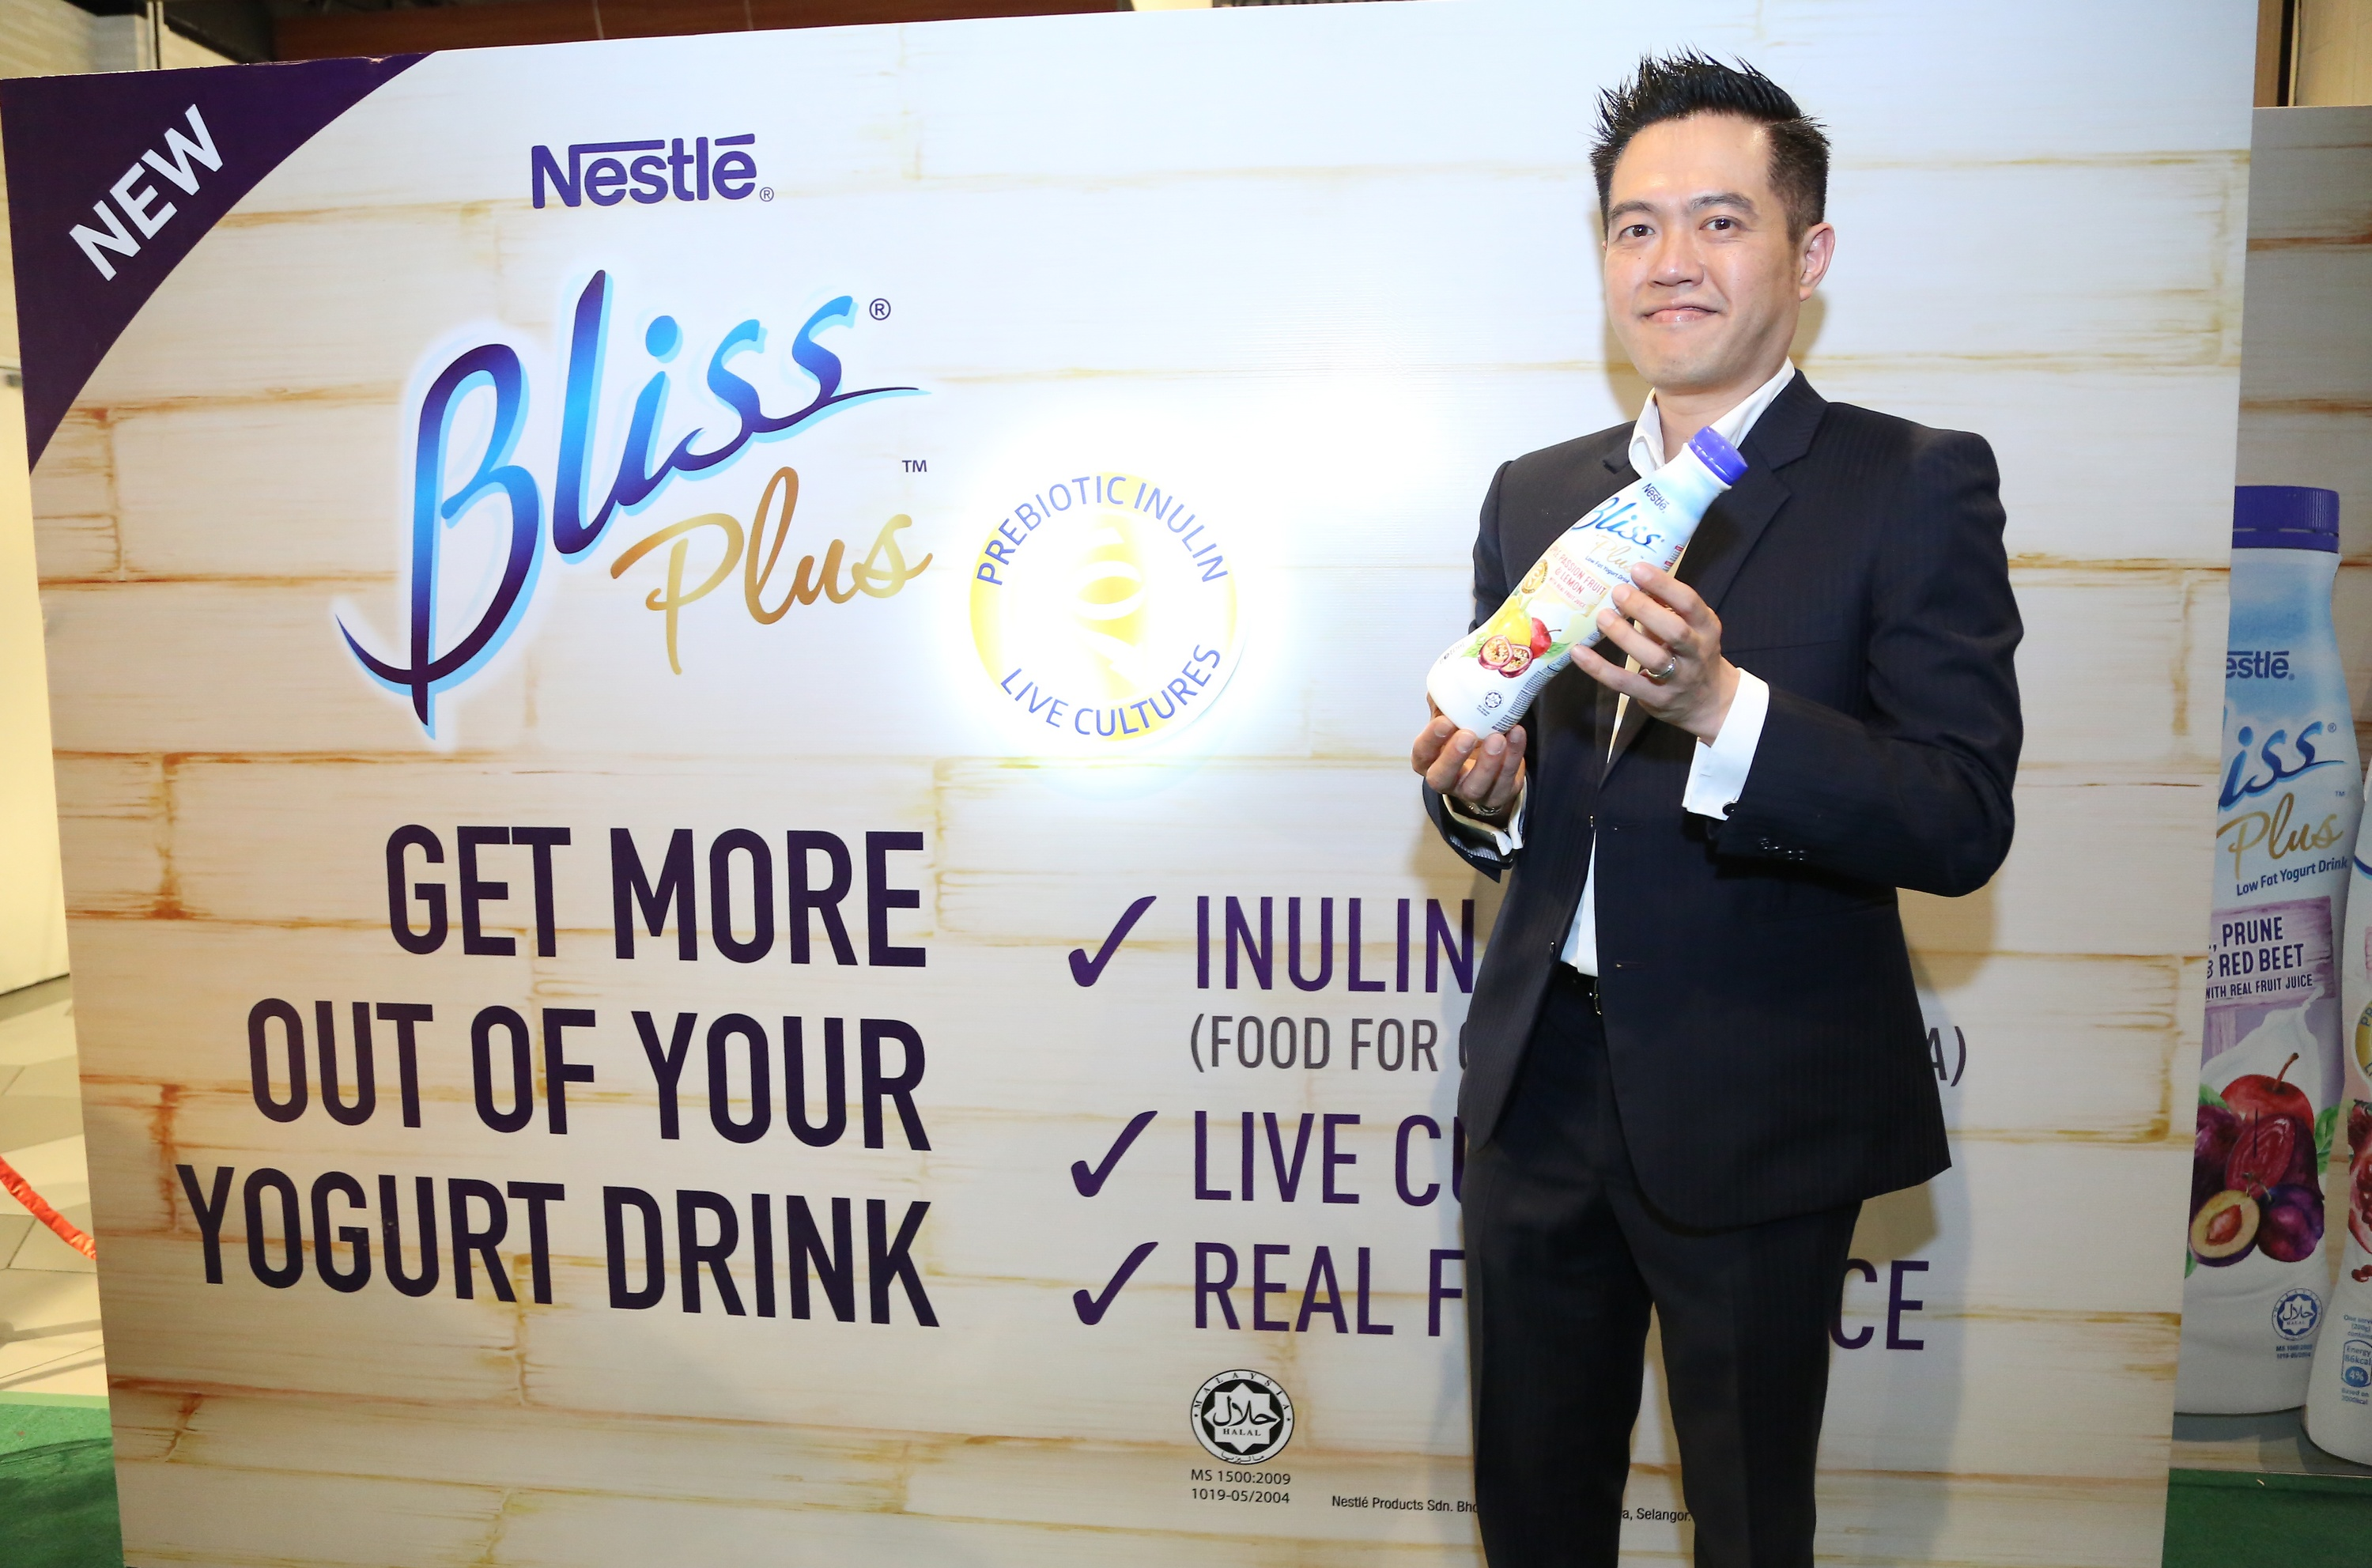 executive summary of nestle in malaysia Kuala lumpur: nestle malaysia on wednesday released a statement defending its chocolate and malt powder product, milo, following public criticism, over its drink malaysian entrepreneur vishen lakhiani had earlier posted a video on youtube, titled the food industry is lying to you about health.